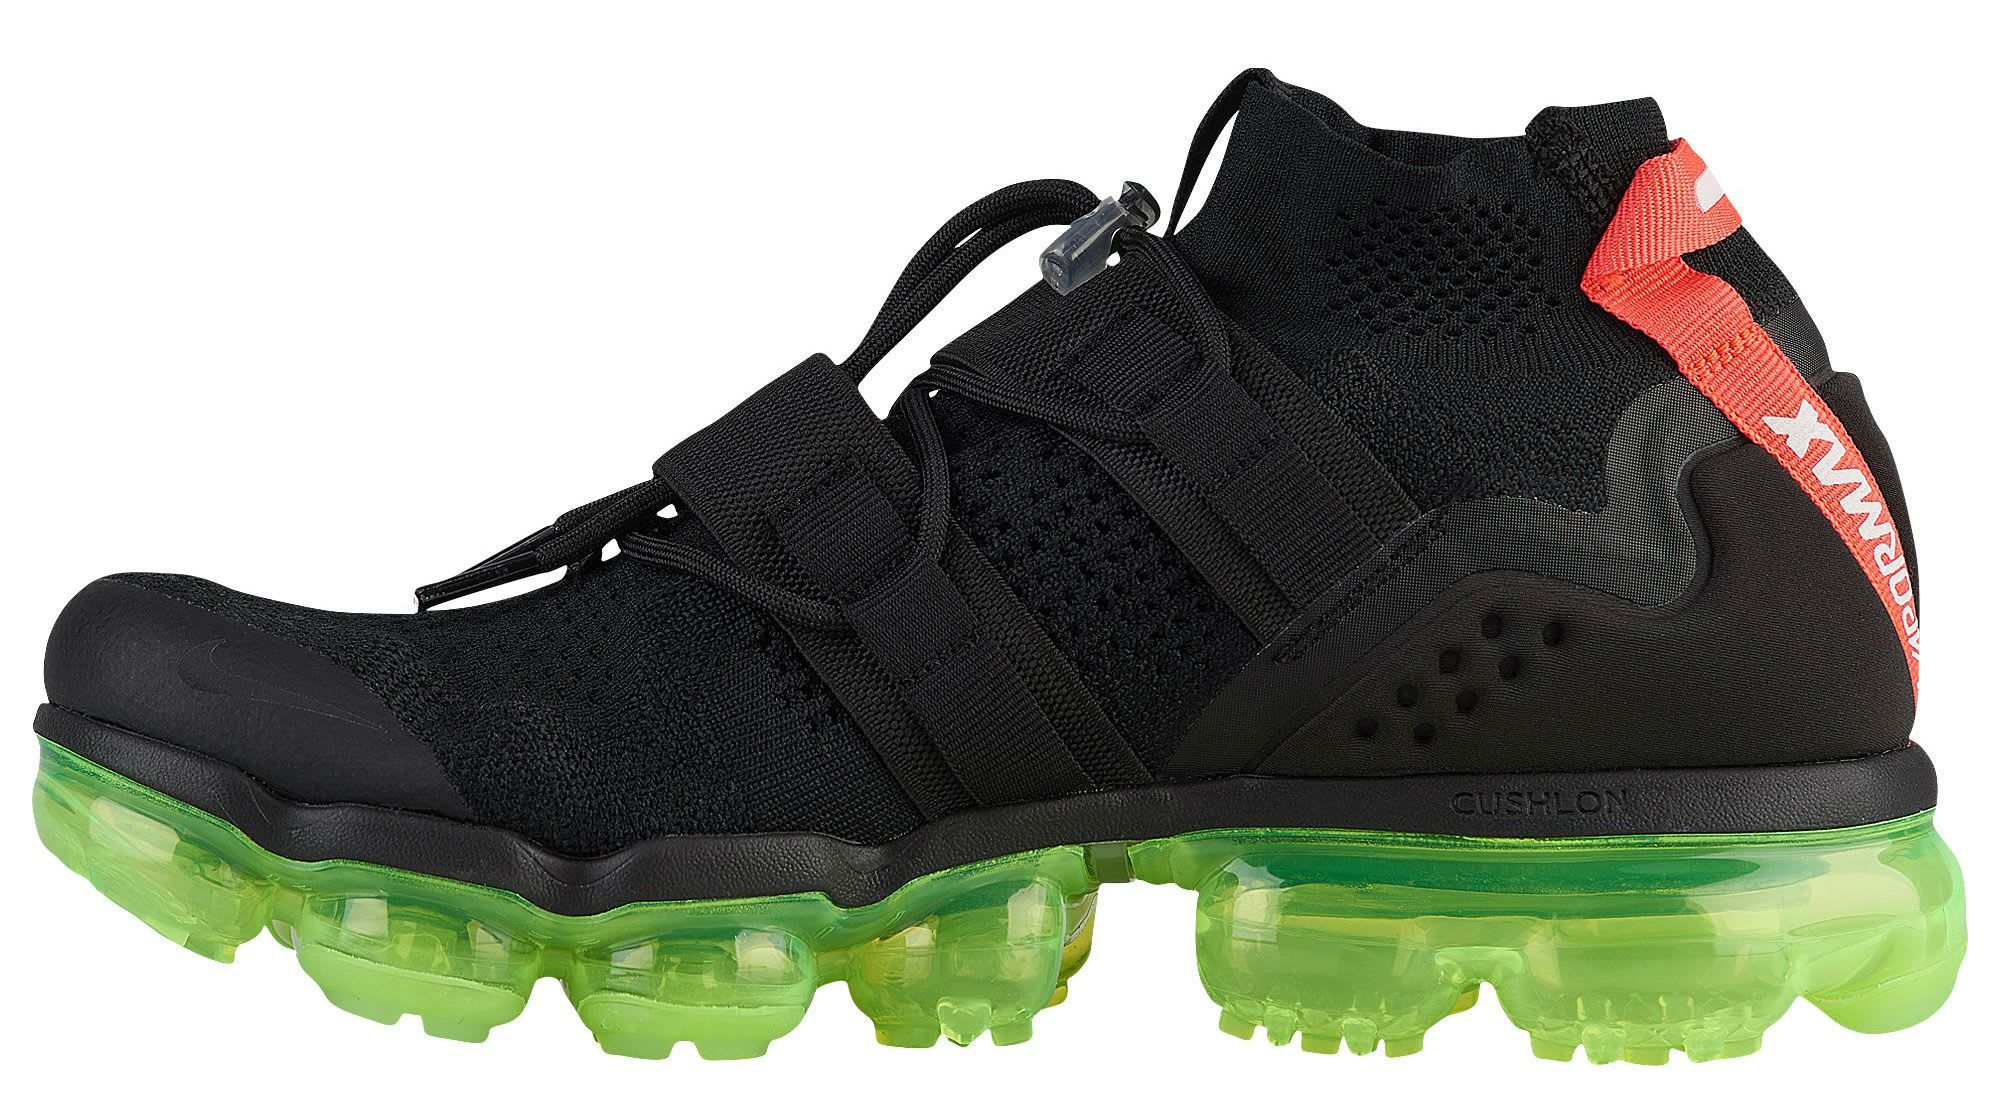 7d9b57ae60ef Nike Air VaporMax Flyknit Utility Yeezy Black Volt Crimson Release Date  AH6834-007 Medial